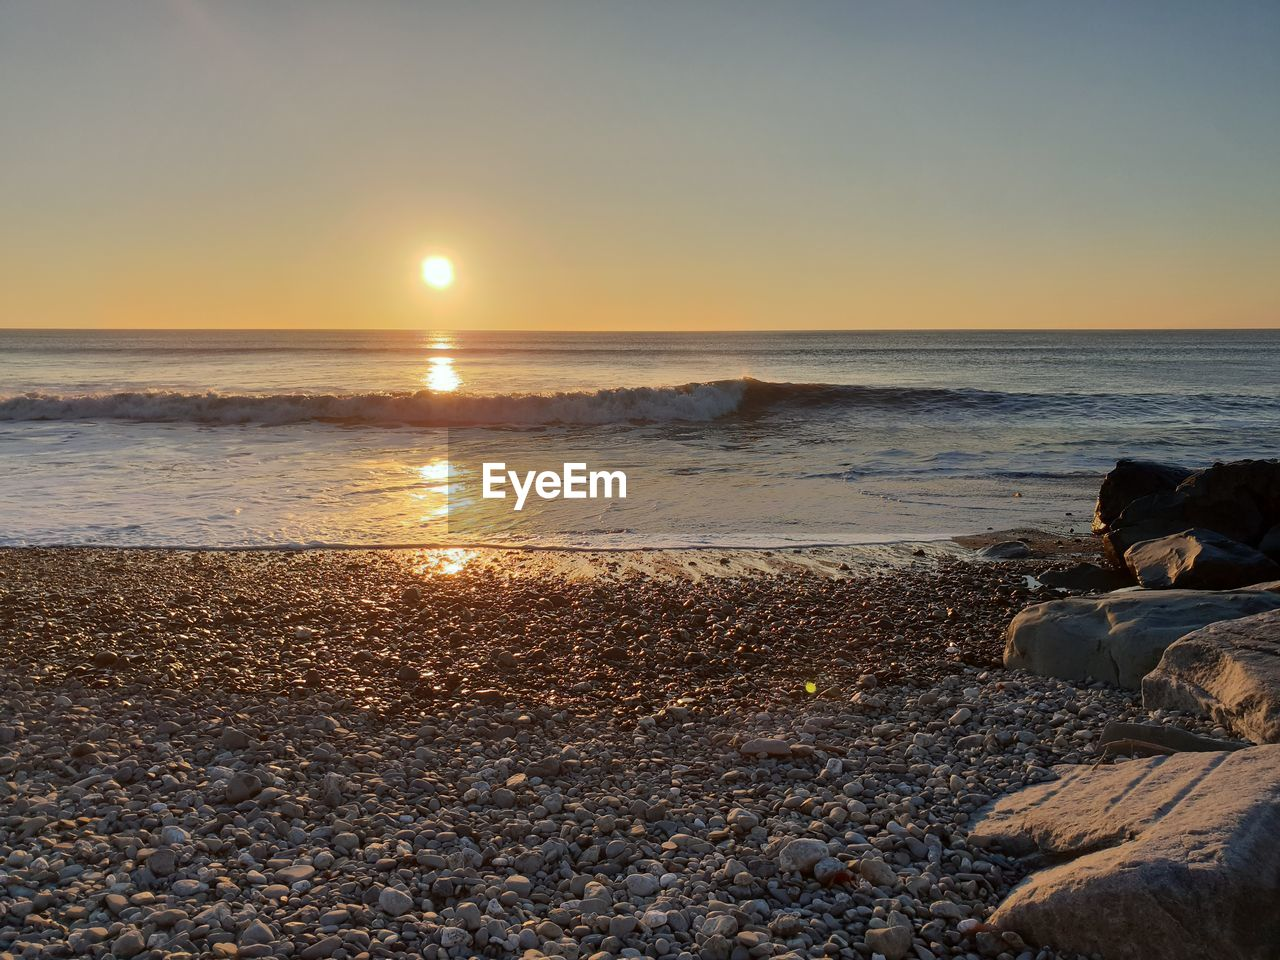 sky, water, beach, sea, land, scenics - nature, horizon, sunset, horizon over water, rock, beauty in nature, solid, rock - object, tranquility, tranquil scene, nature, stone, pebble, stone - object, no people, outdoors